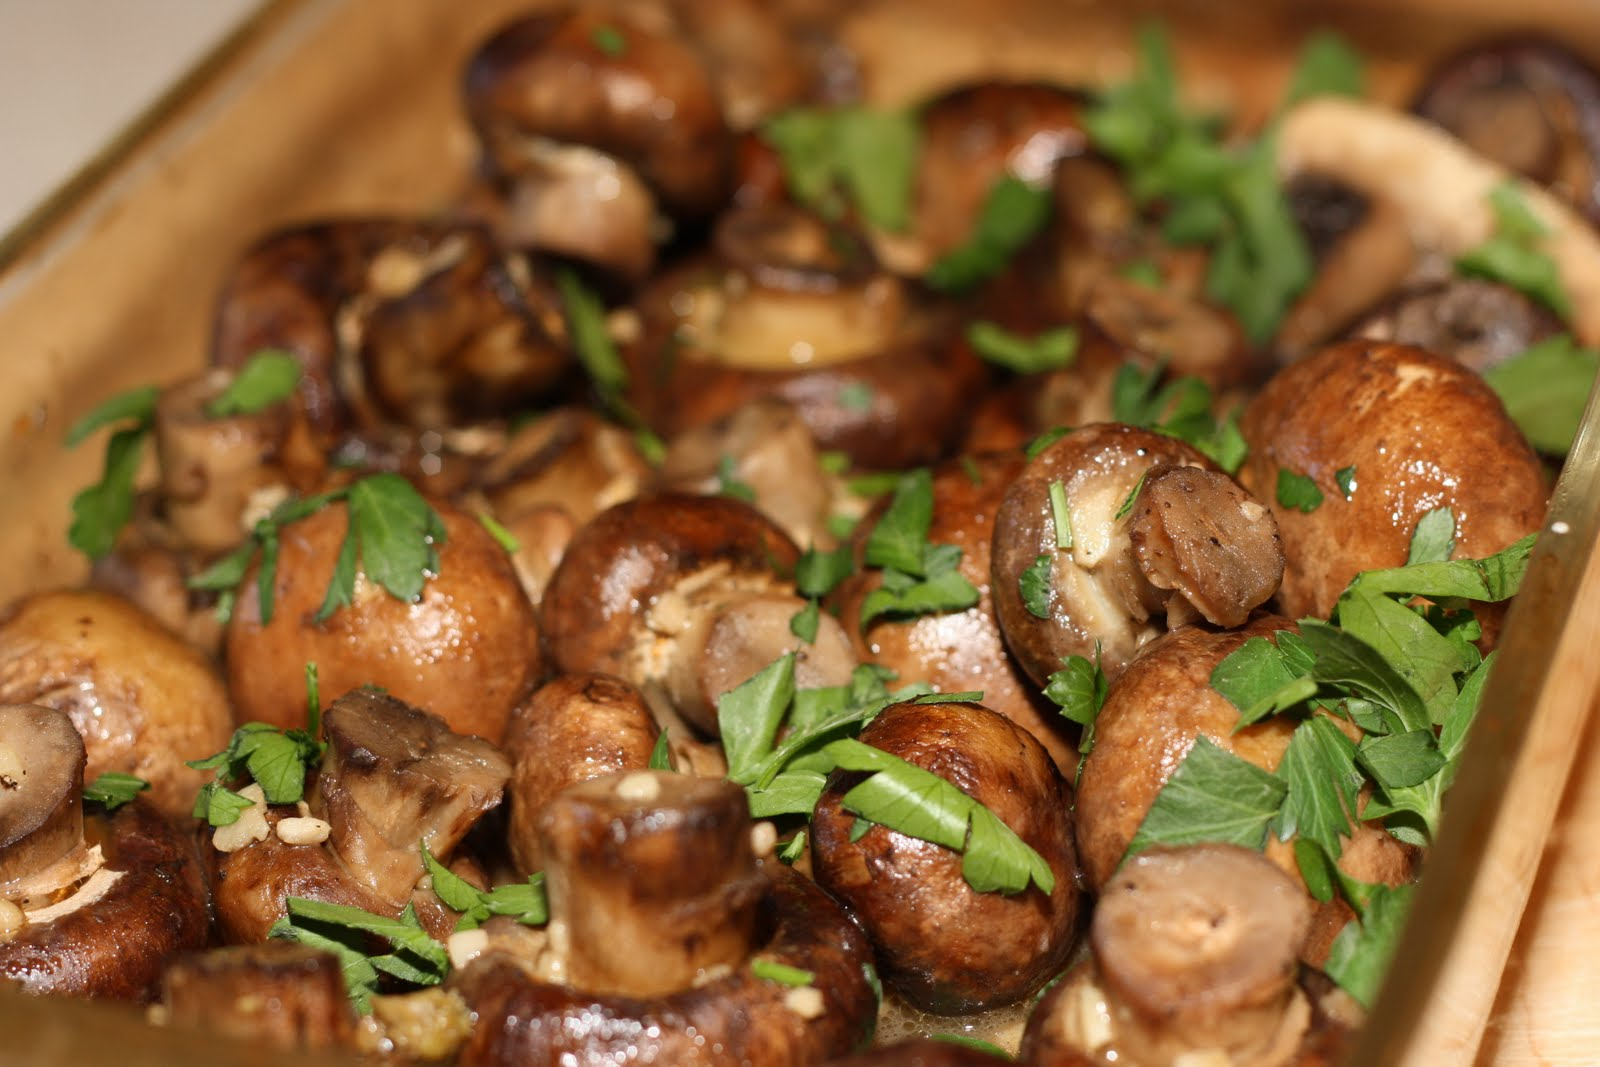 The Bitchin' Kitchin': Garlic Butter Roasted Mushrooms